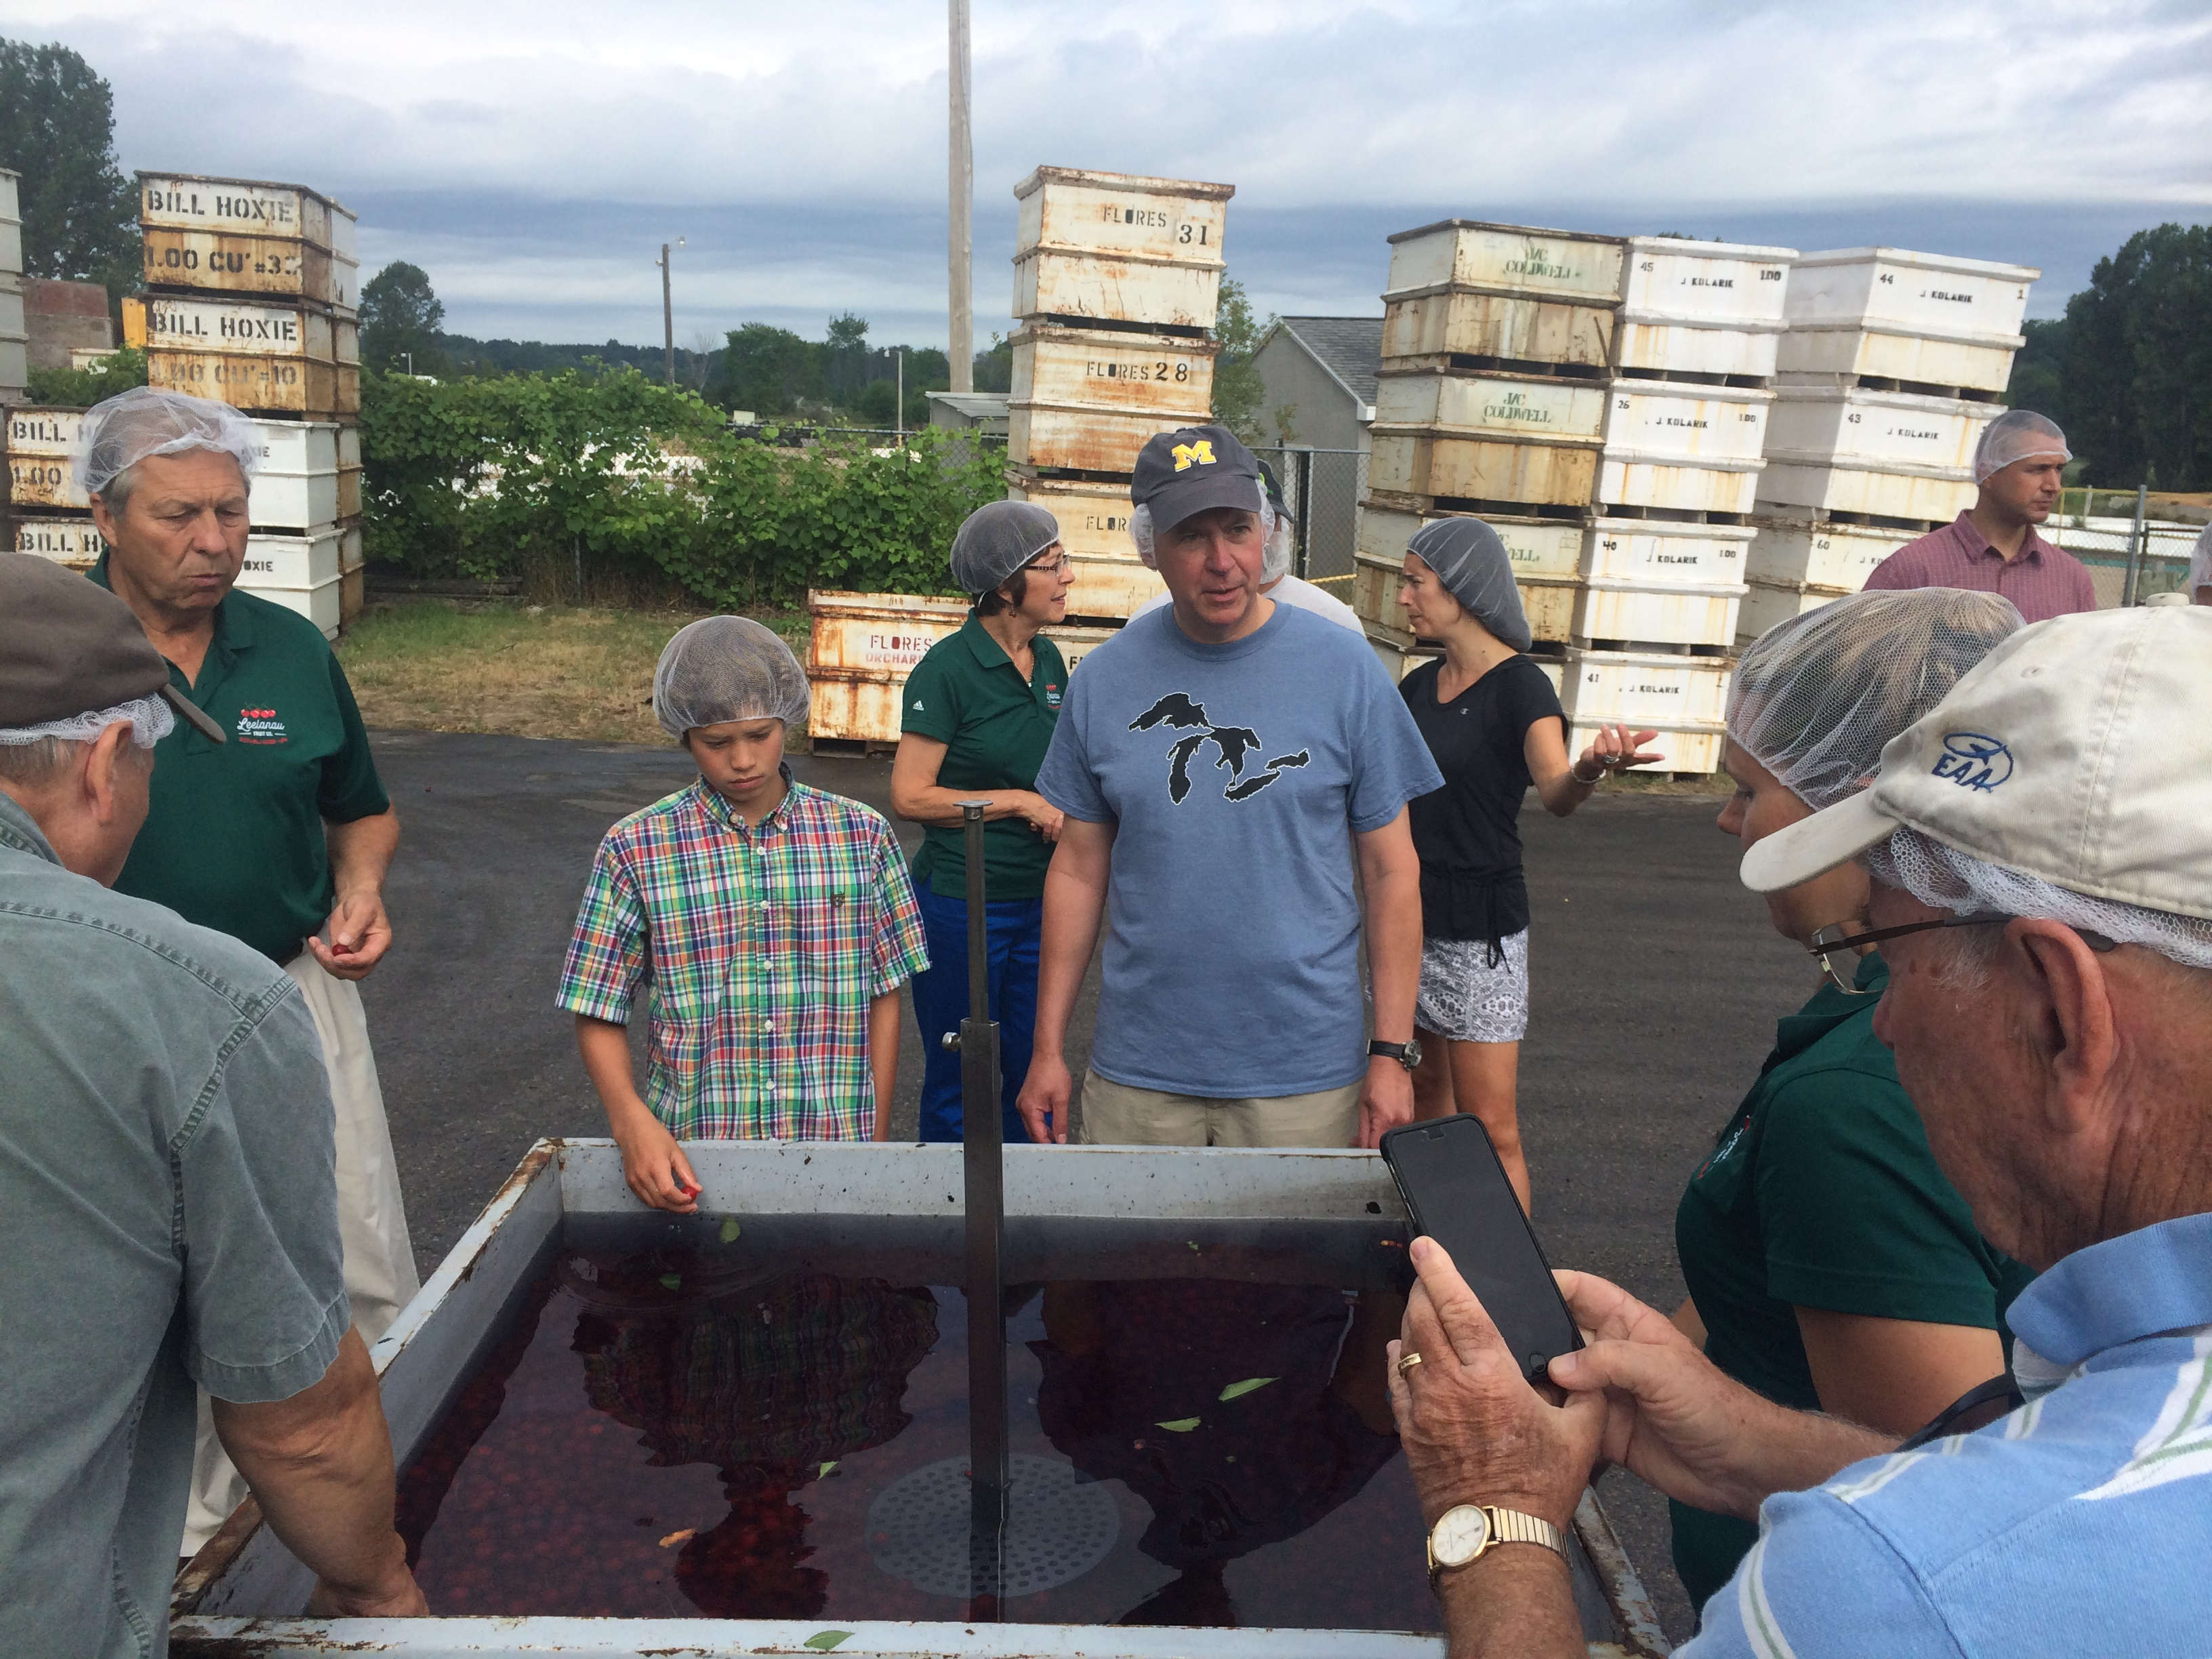 Governor Snyder inspects a tank of tart cherries fresh from the orchard.